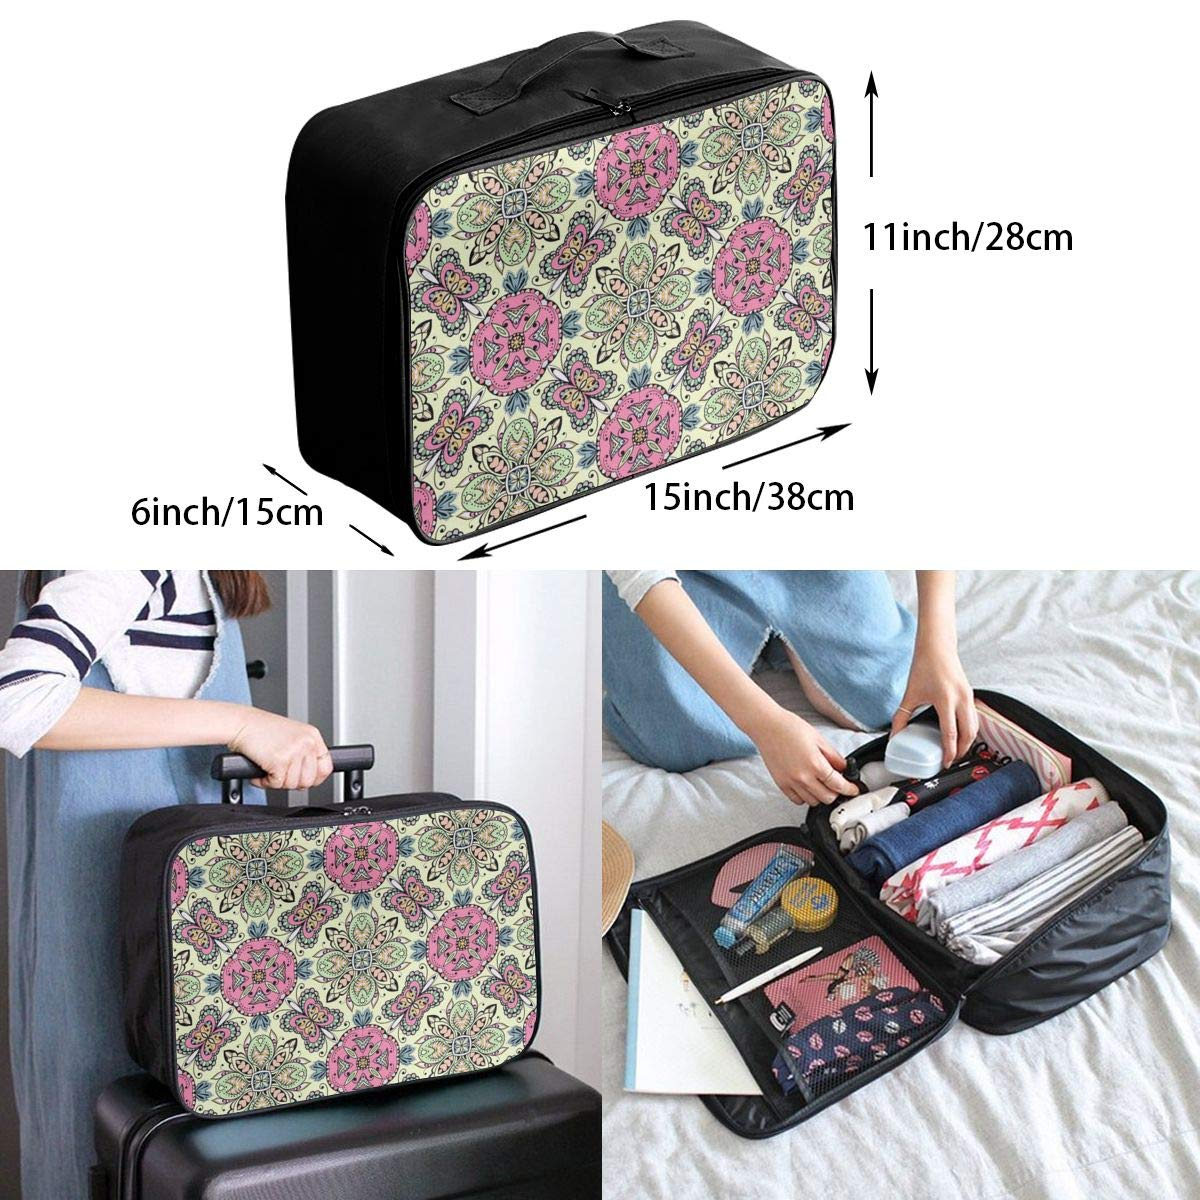 Travel Duffel Bag Waterproof Fashion Lightweight Large Capacity Portable Luggage Bag Bohemian Psychedelic Mandala